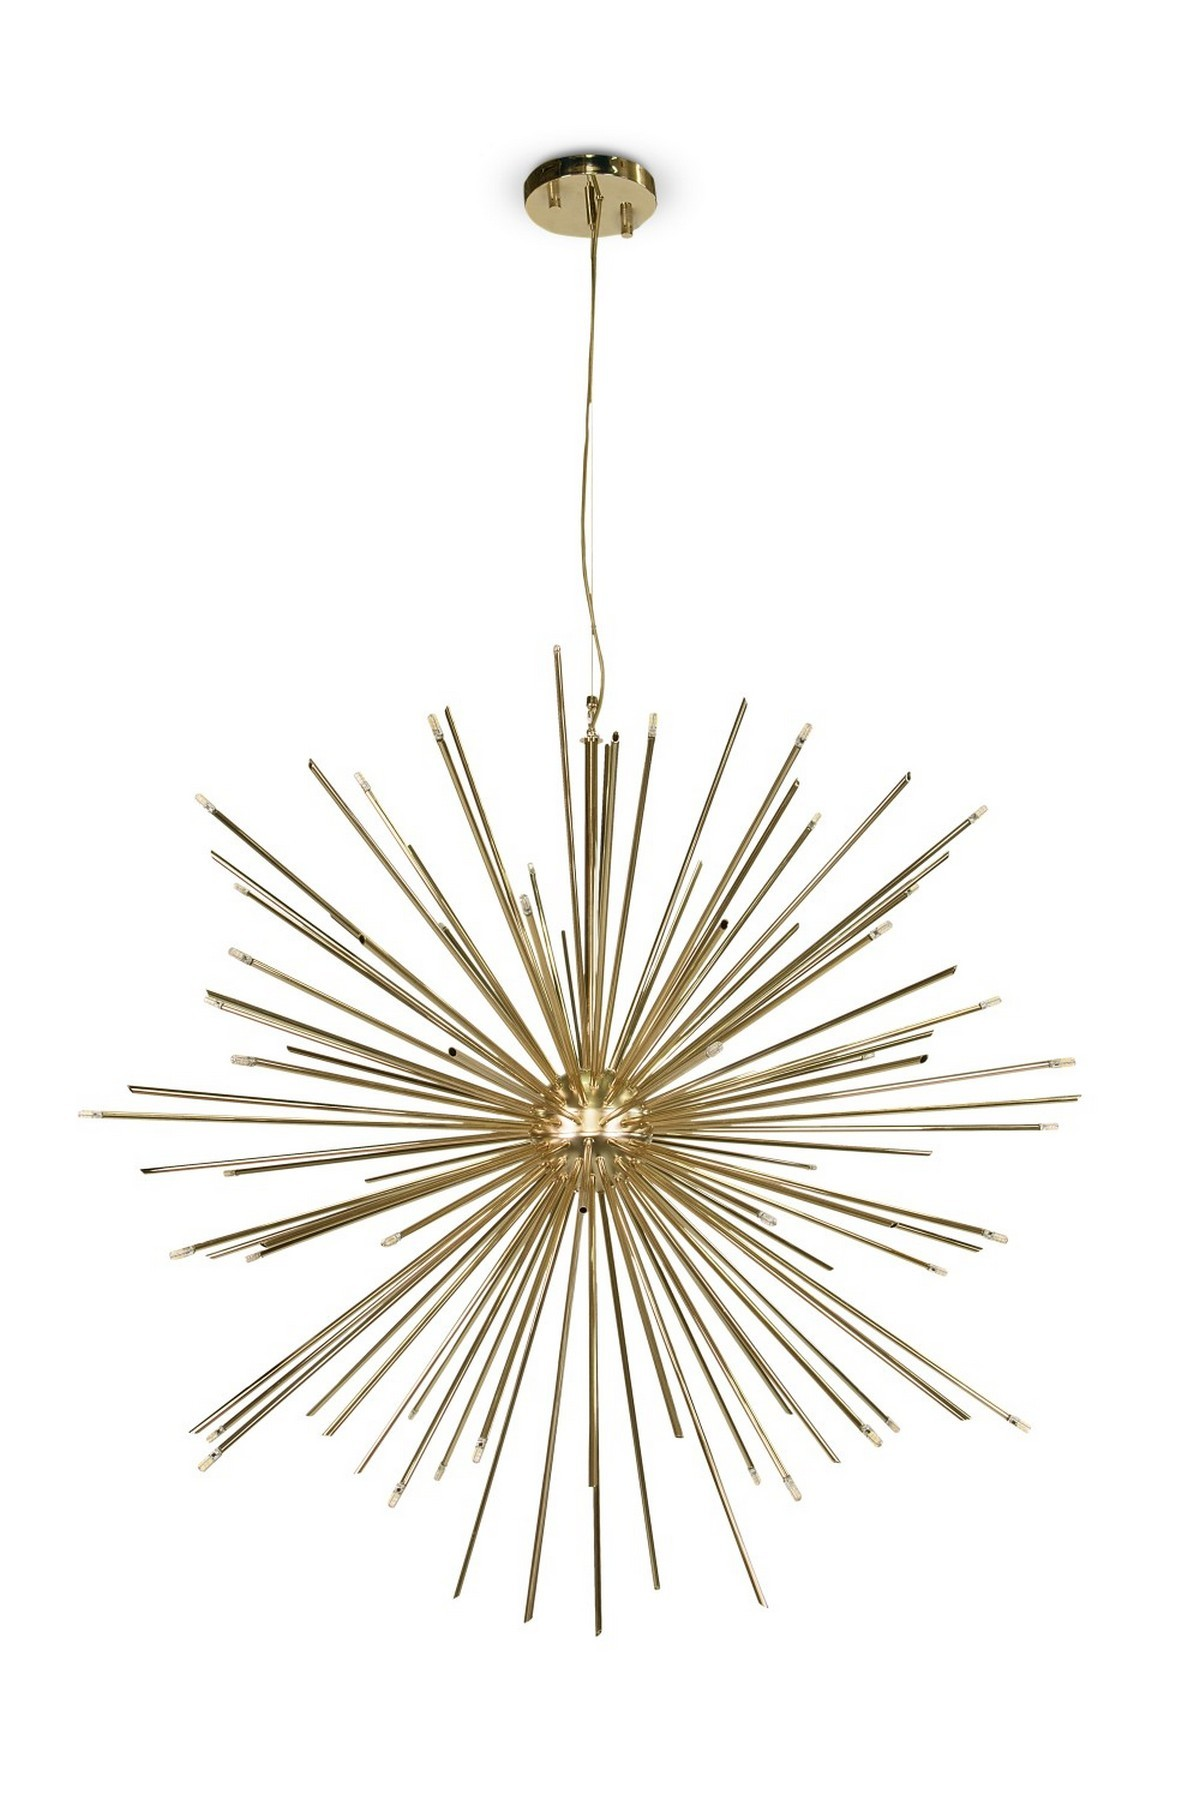 living room, living room ideas, living room decor, mid-century design, mid-century chandeliers, luxury chandeliers, luxury furniture, mid-century lighting,  mid-century chandeliers How Mid-Century Chandeliers Can Elevate Your Living Room Decor Product of the Week Cannonball Mid Century Suspension Lamp 4 1